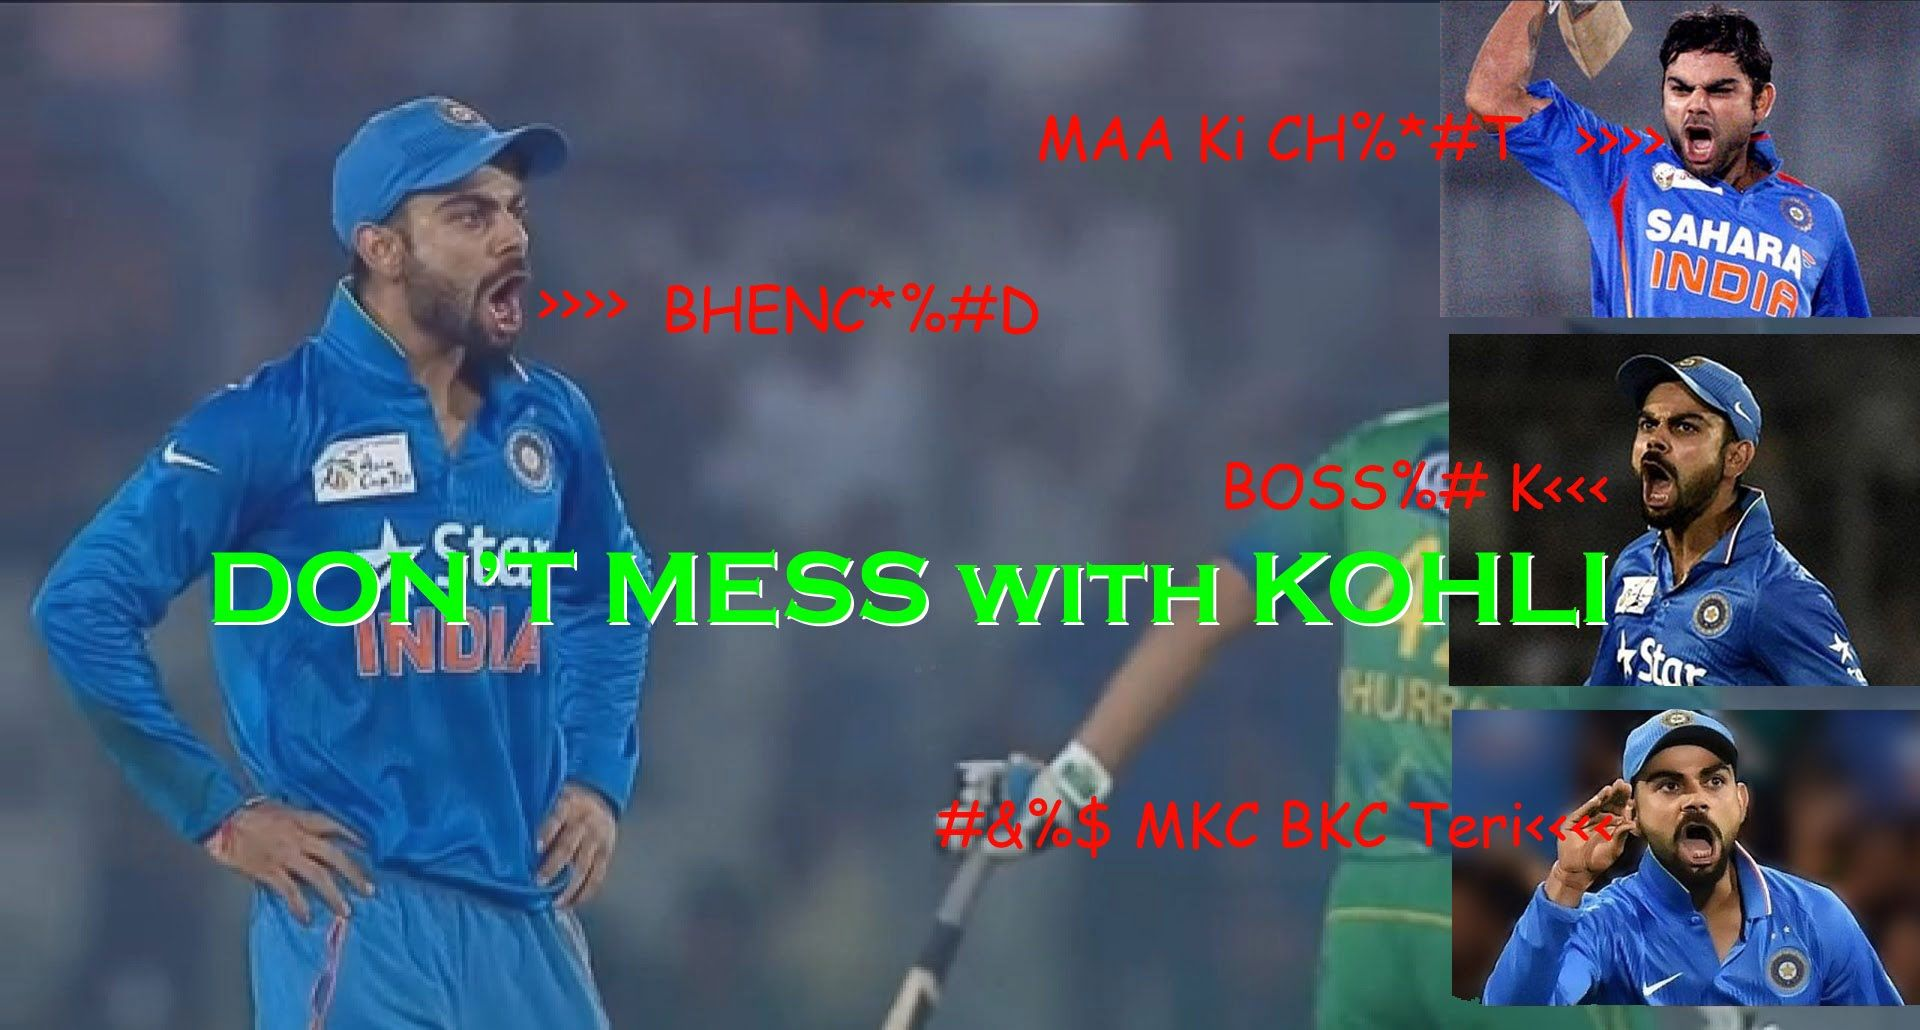 Never Mess with VIRAT KOHLI Angry Kohli Abusing